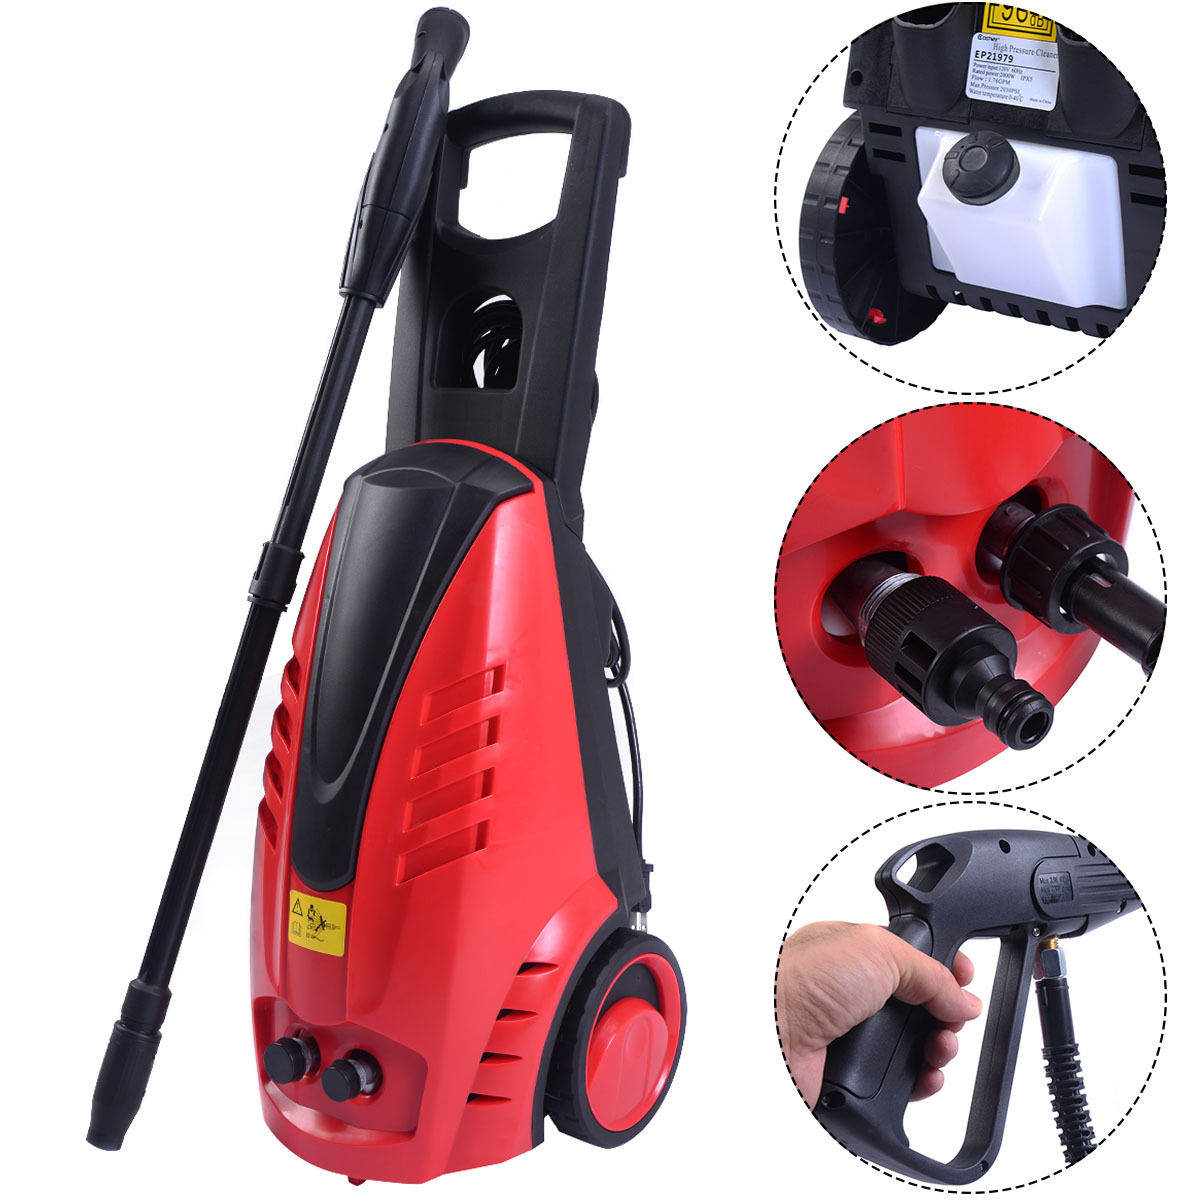 Costway Heavy Duty 2030PSI Electric High Pressure Washer 2000W 1.76GPM Jet Sprayer by Costway